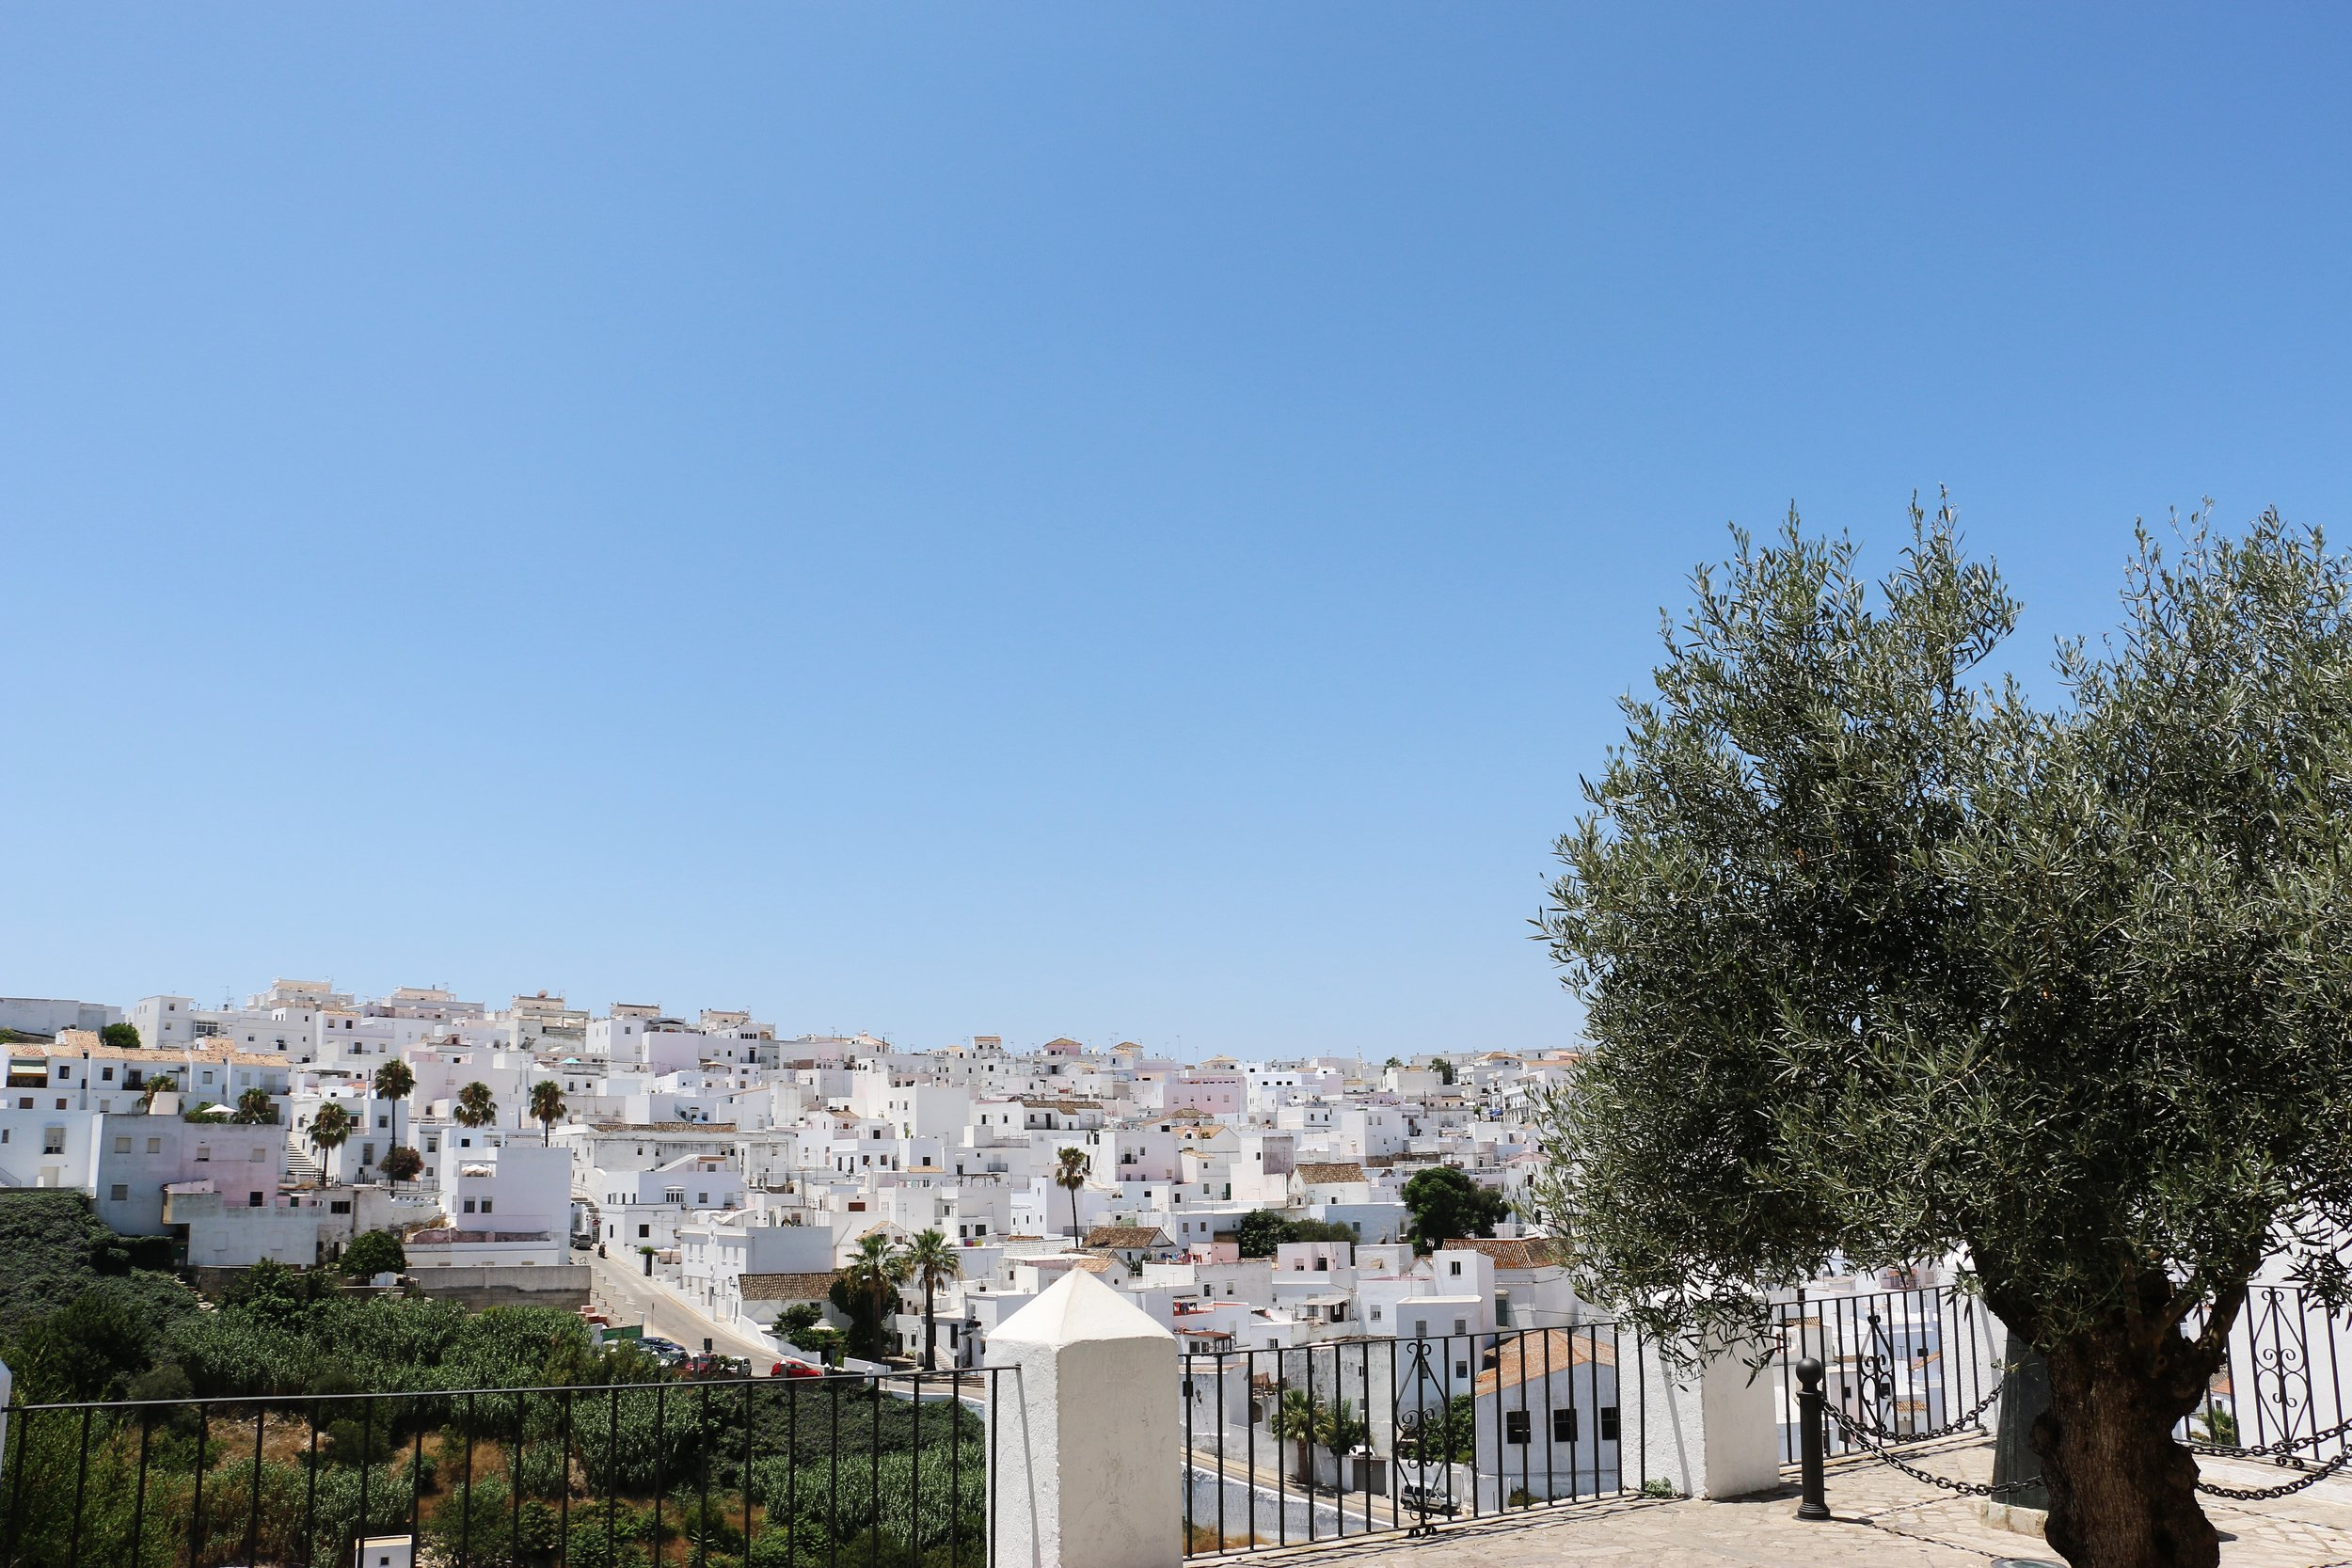 Olive trees are everywhere in the region